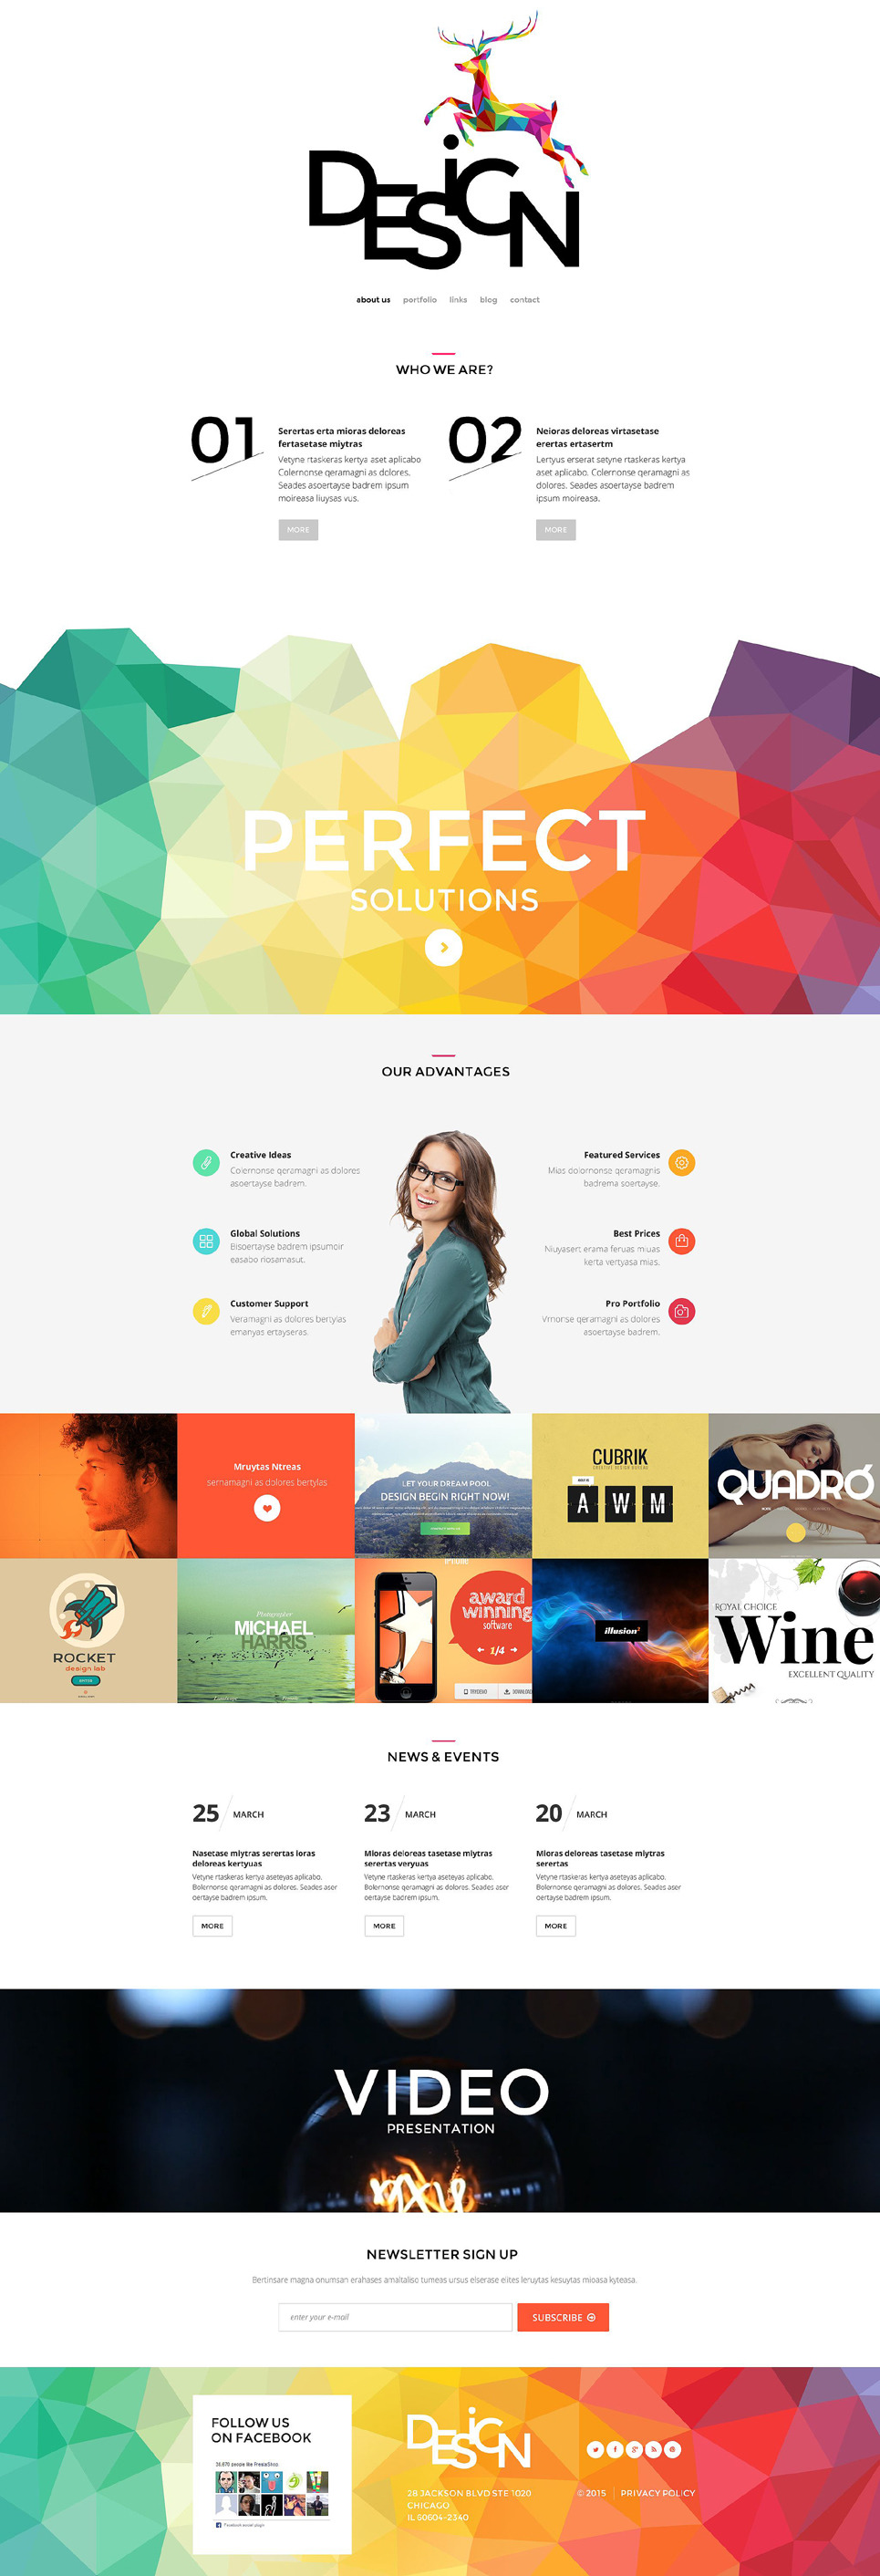 Design PSD Template New Screenshots BIG